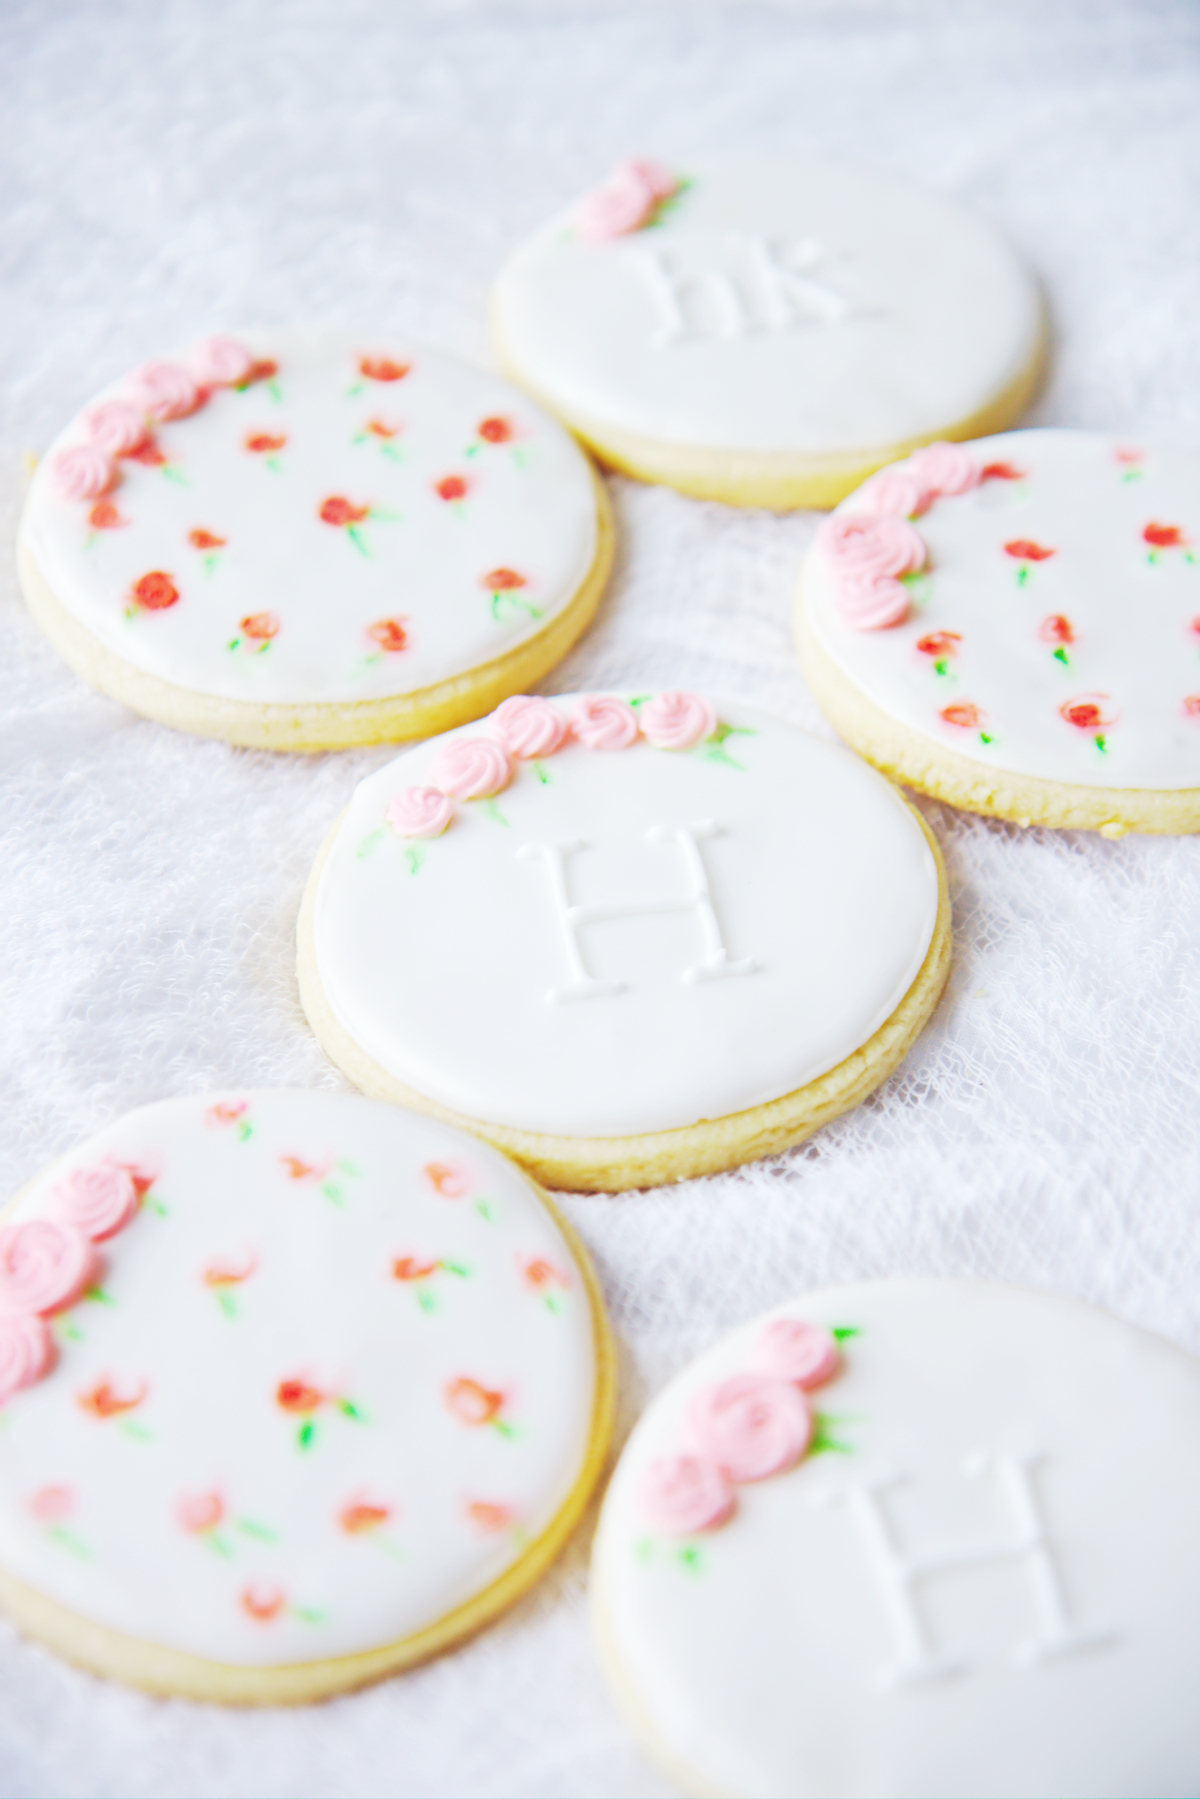 Decorated Rose Cookies | La Pêche Fraîche